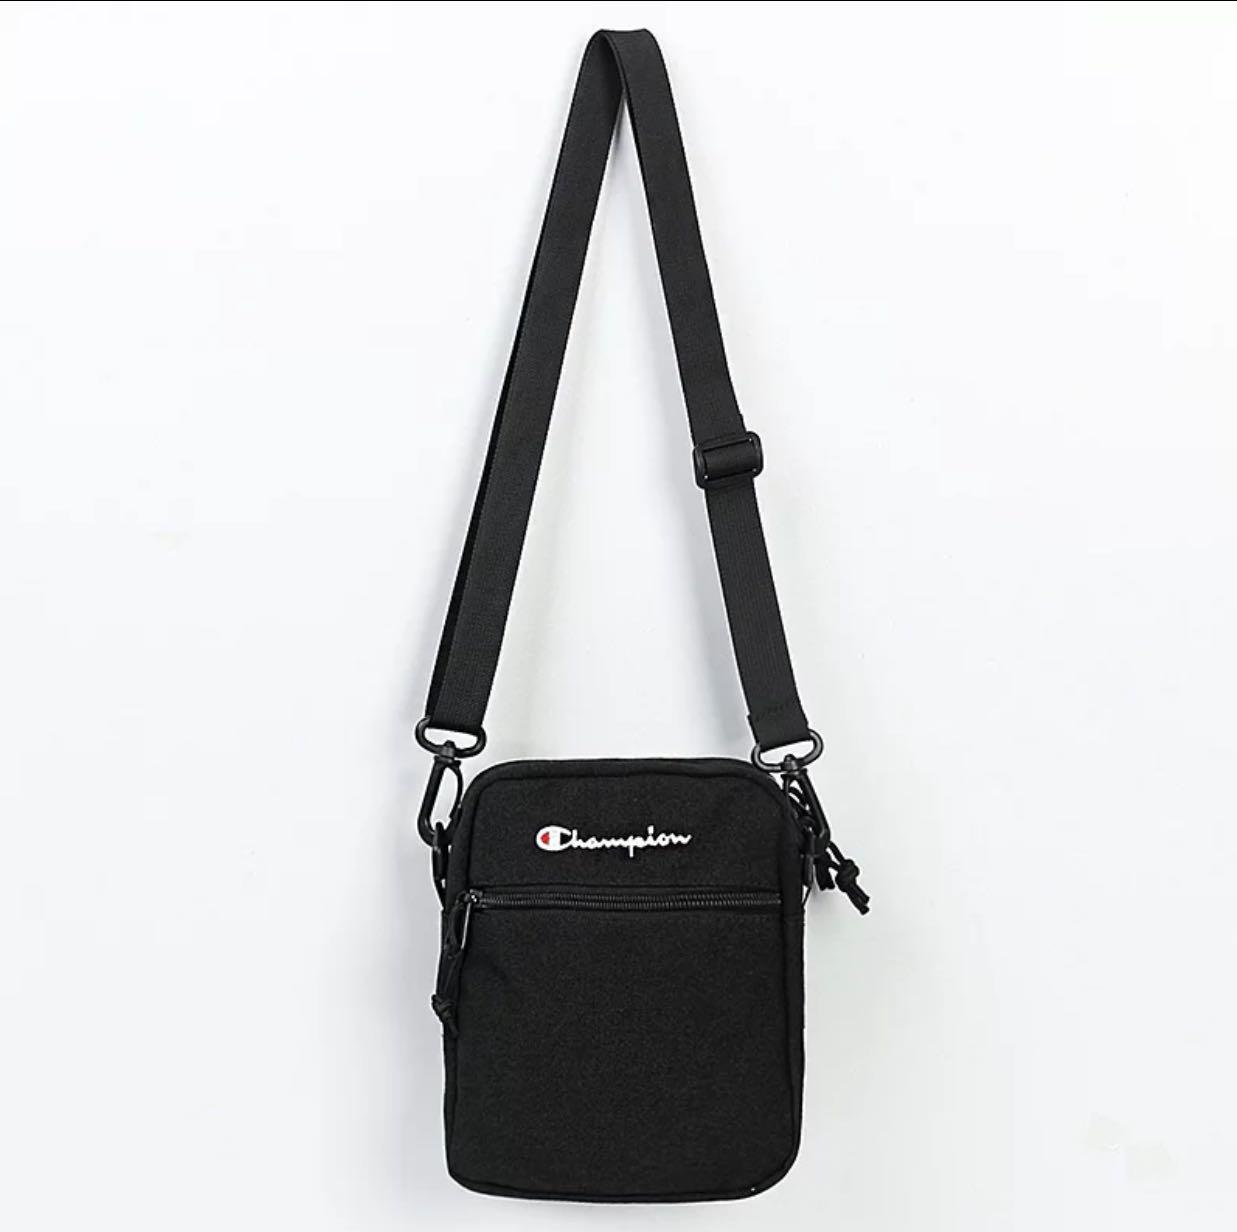 Authentic Champion Sling Bag (Brand new and instocks)